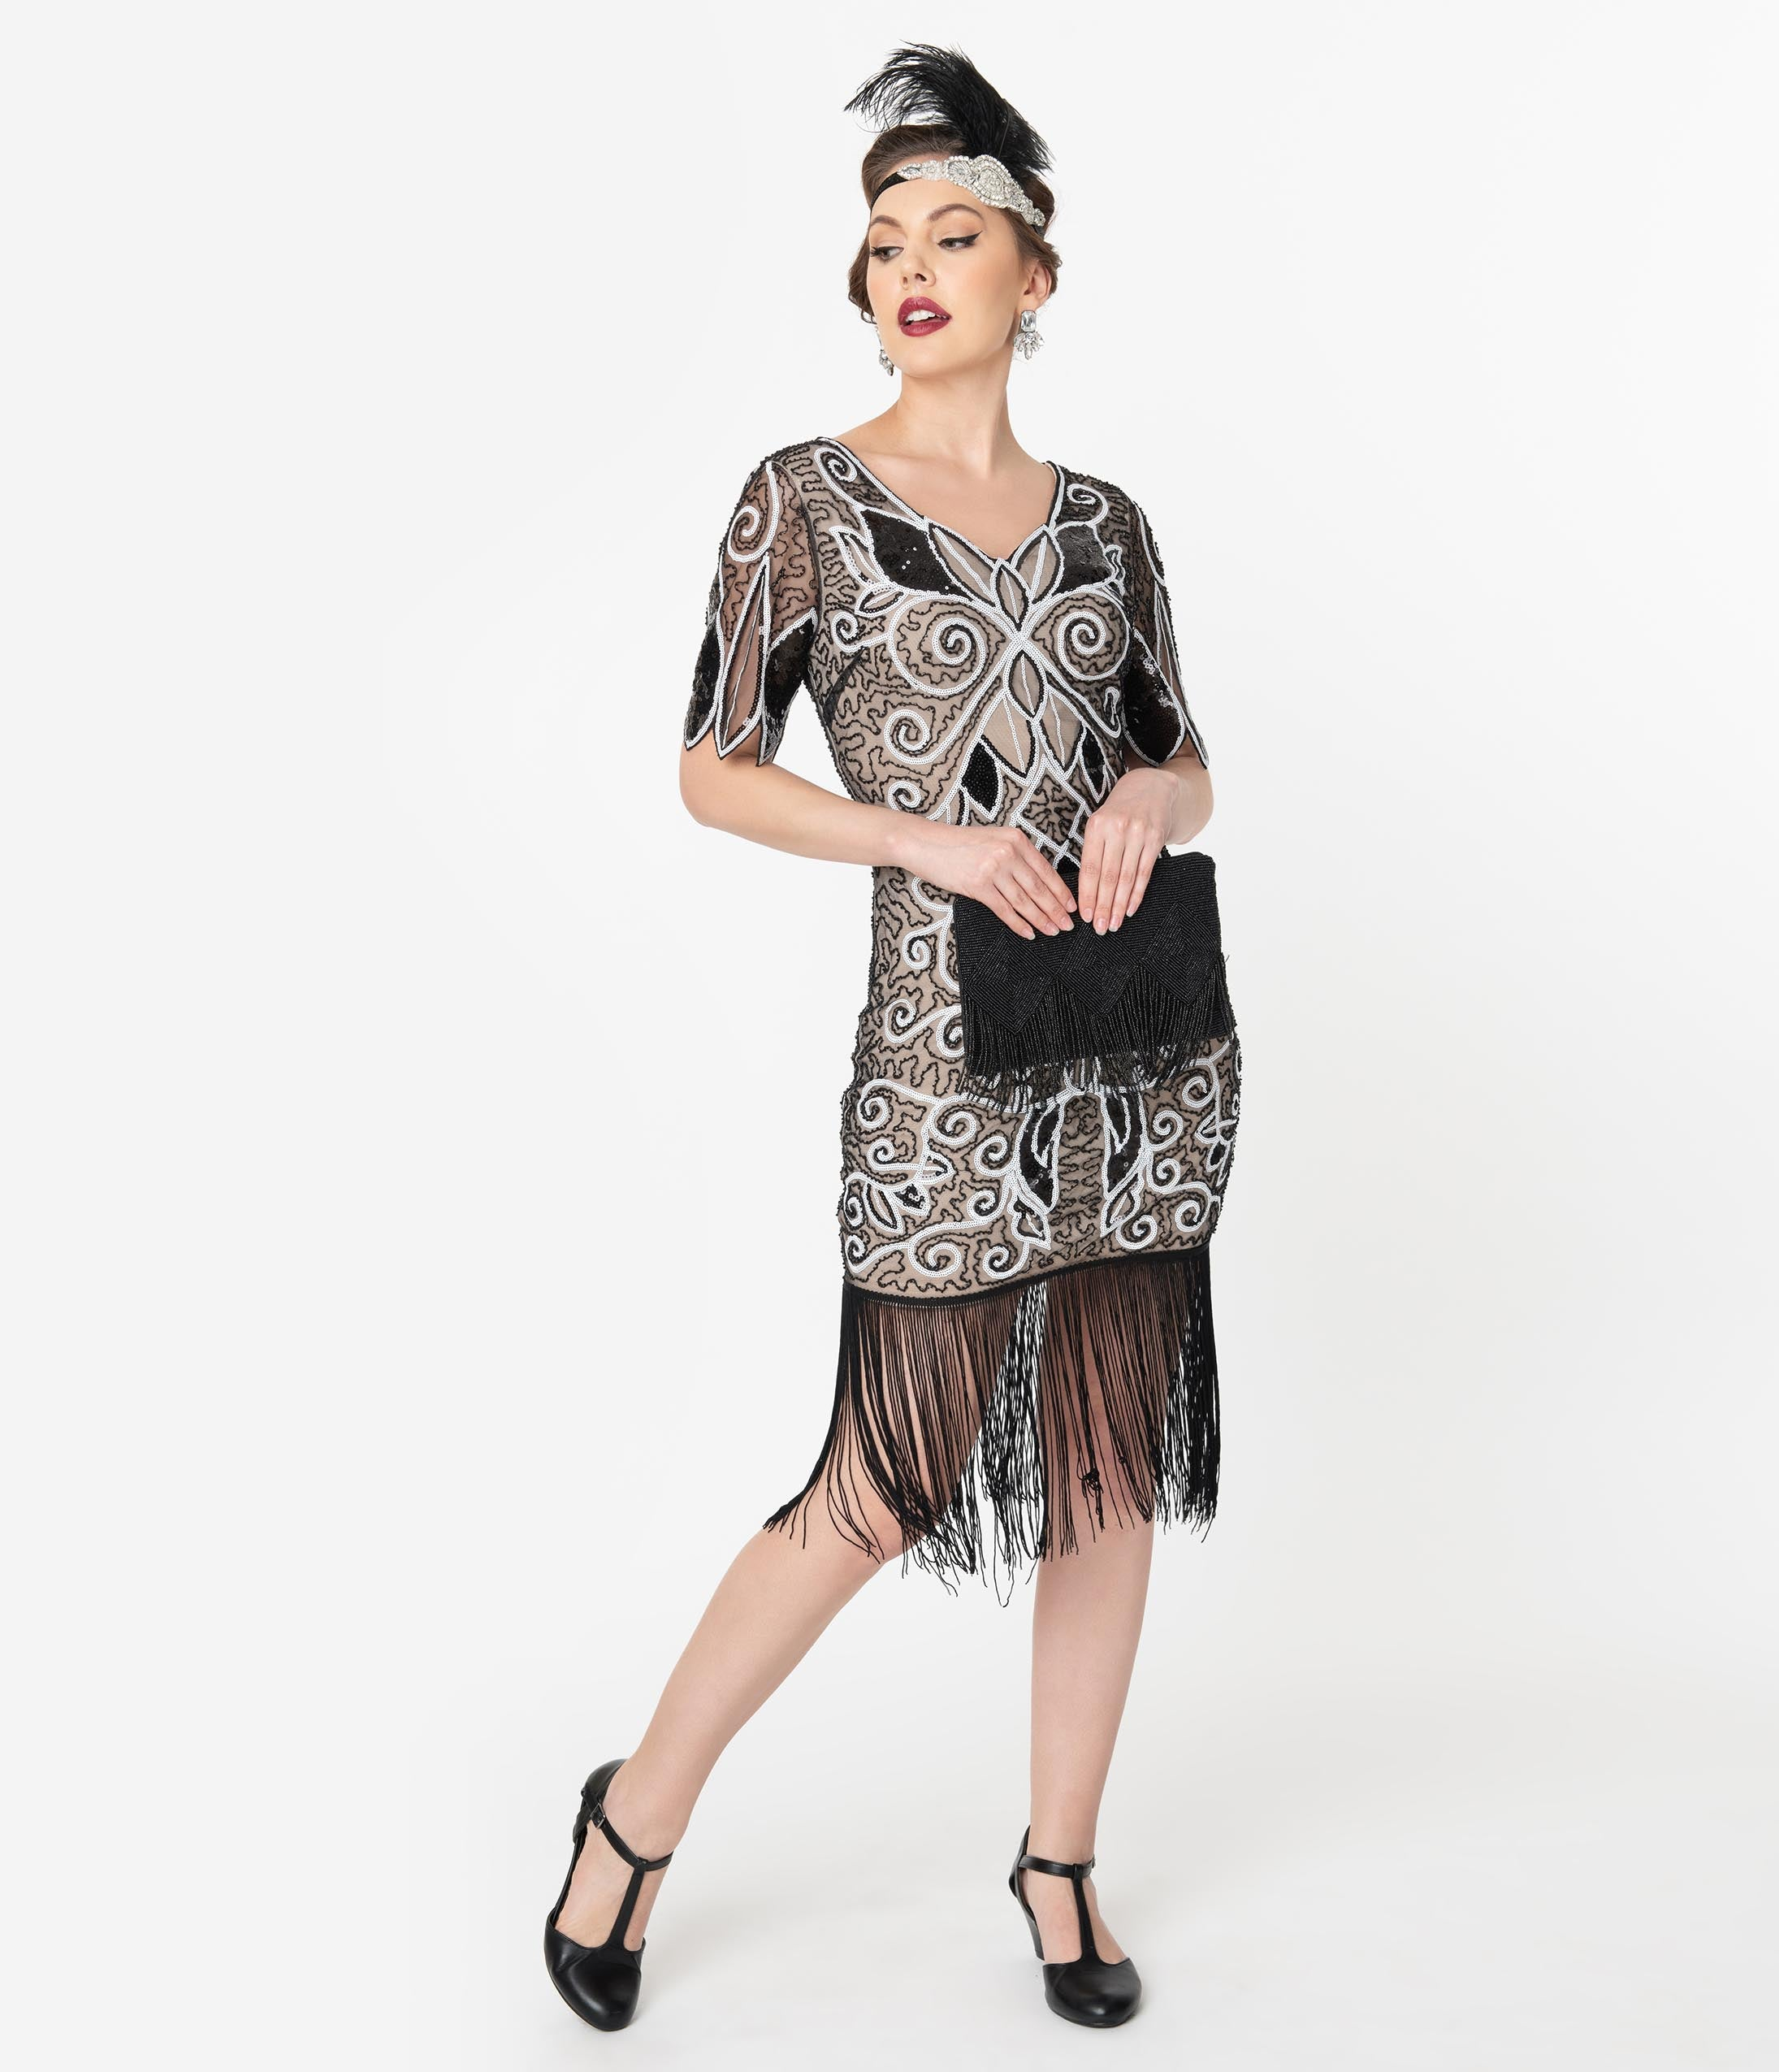 Great Gatsby Dress – Great Gatsby Dresses for Sale Unique Vintage 1920S Style Black  White Sequin Florent Flapper Dress $98.00 AT vintagedancer.com